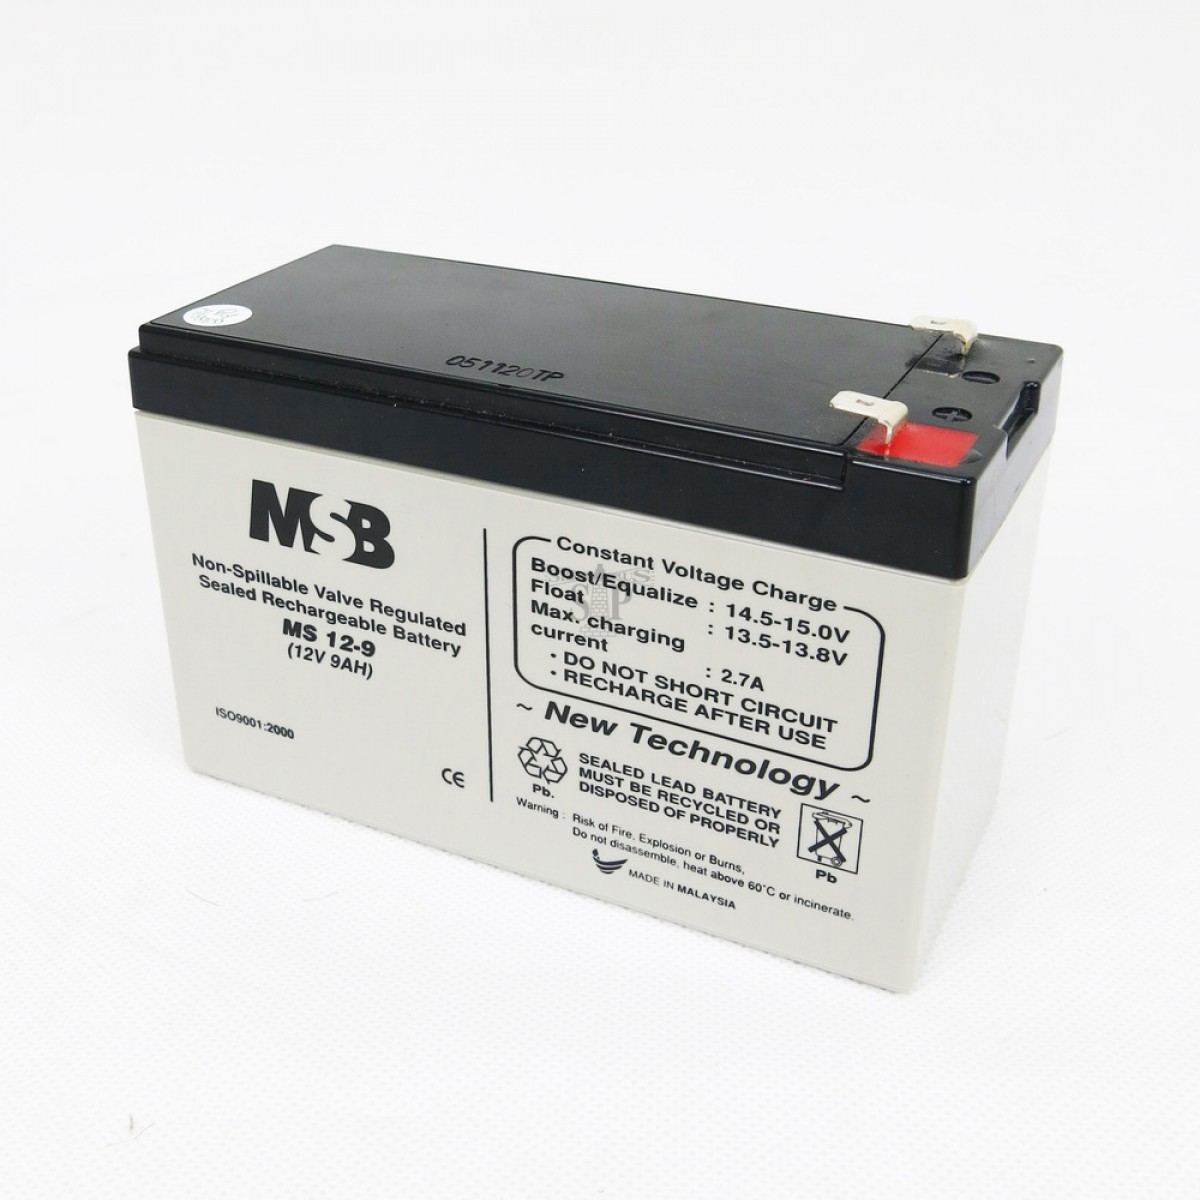 MSB MS12-9 12V 9AH Non-Spillable Valve Regulated Sealed Rechargeable Lead Battery